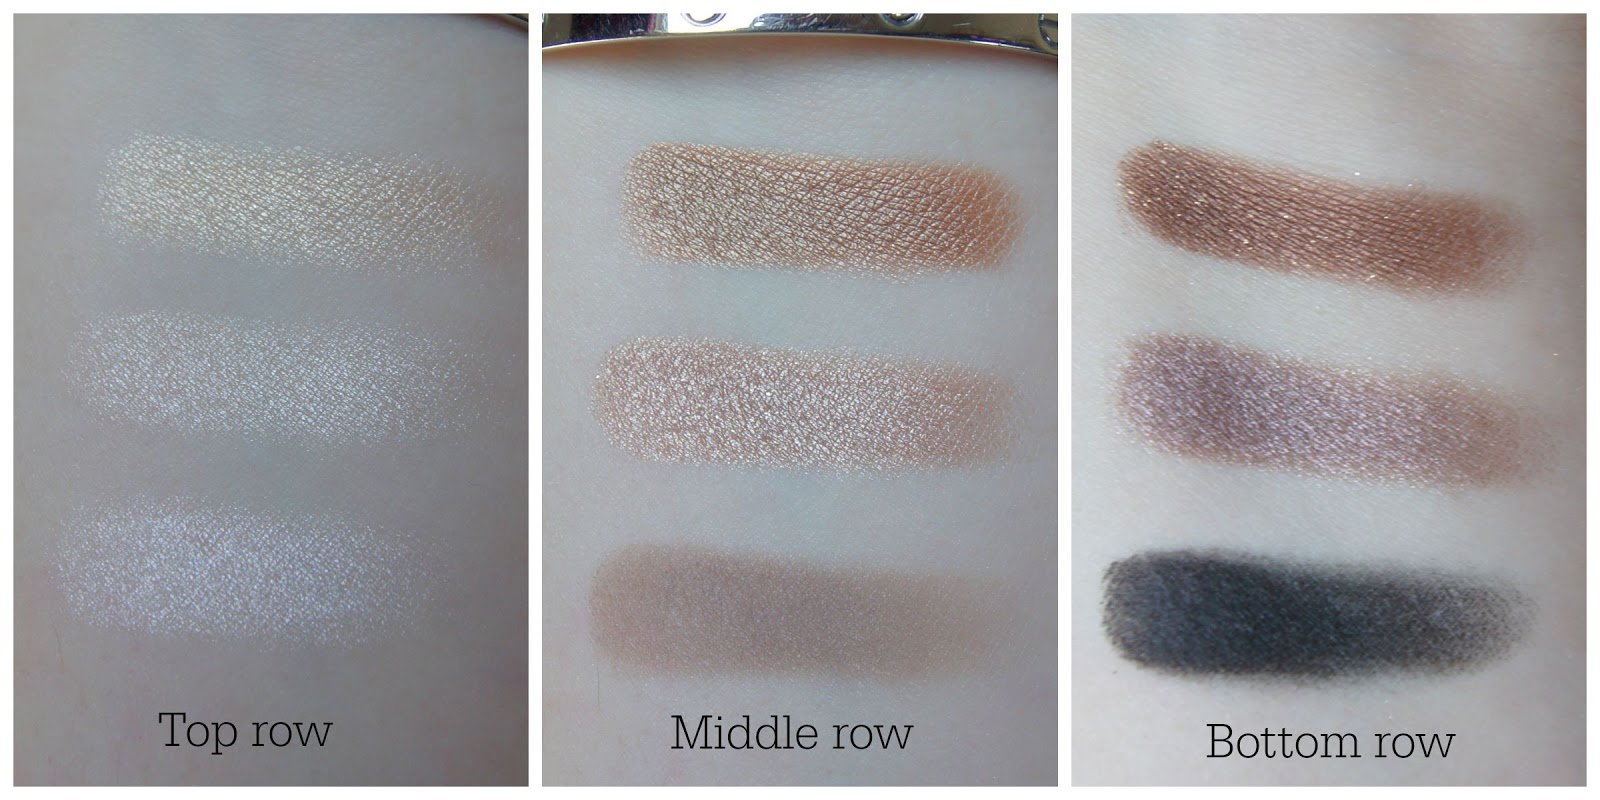 Make Up For Ever Artist Palette Volume 1-Nudes